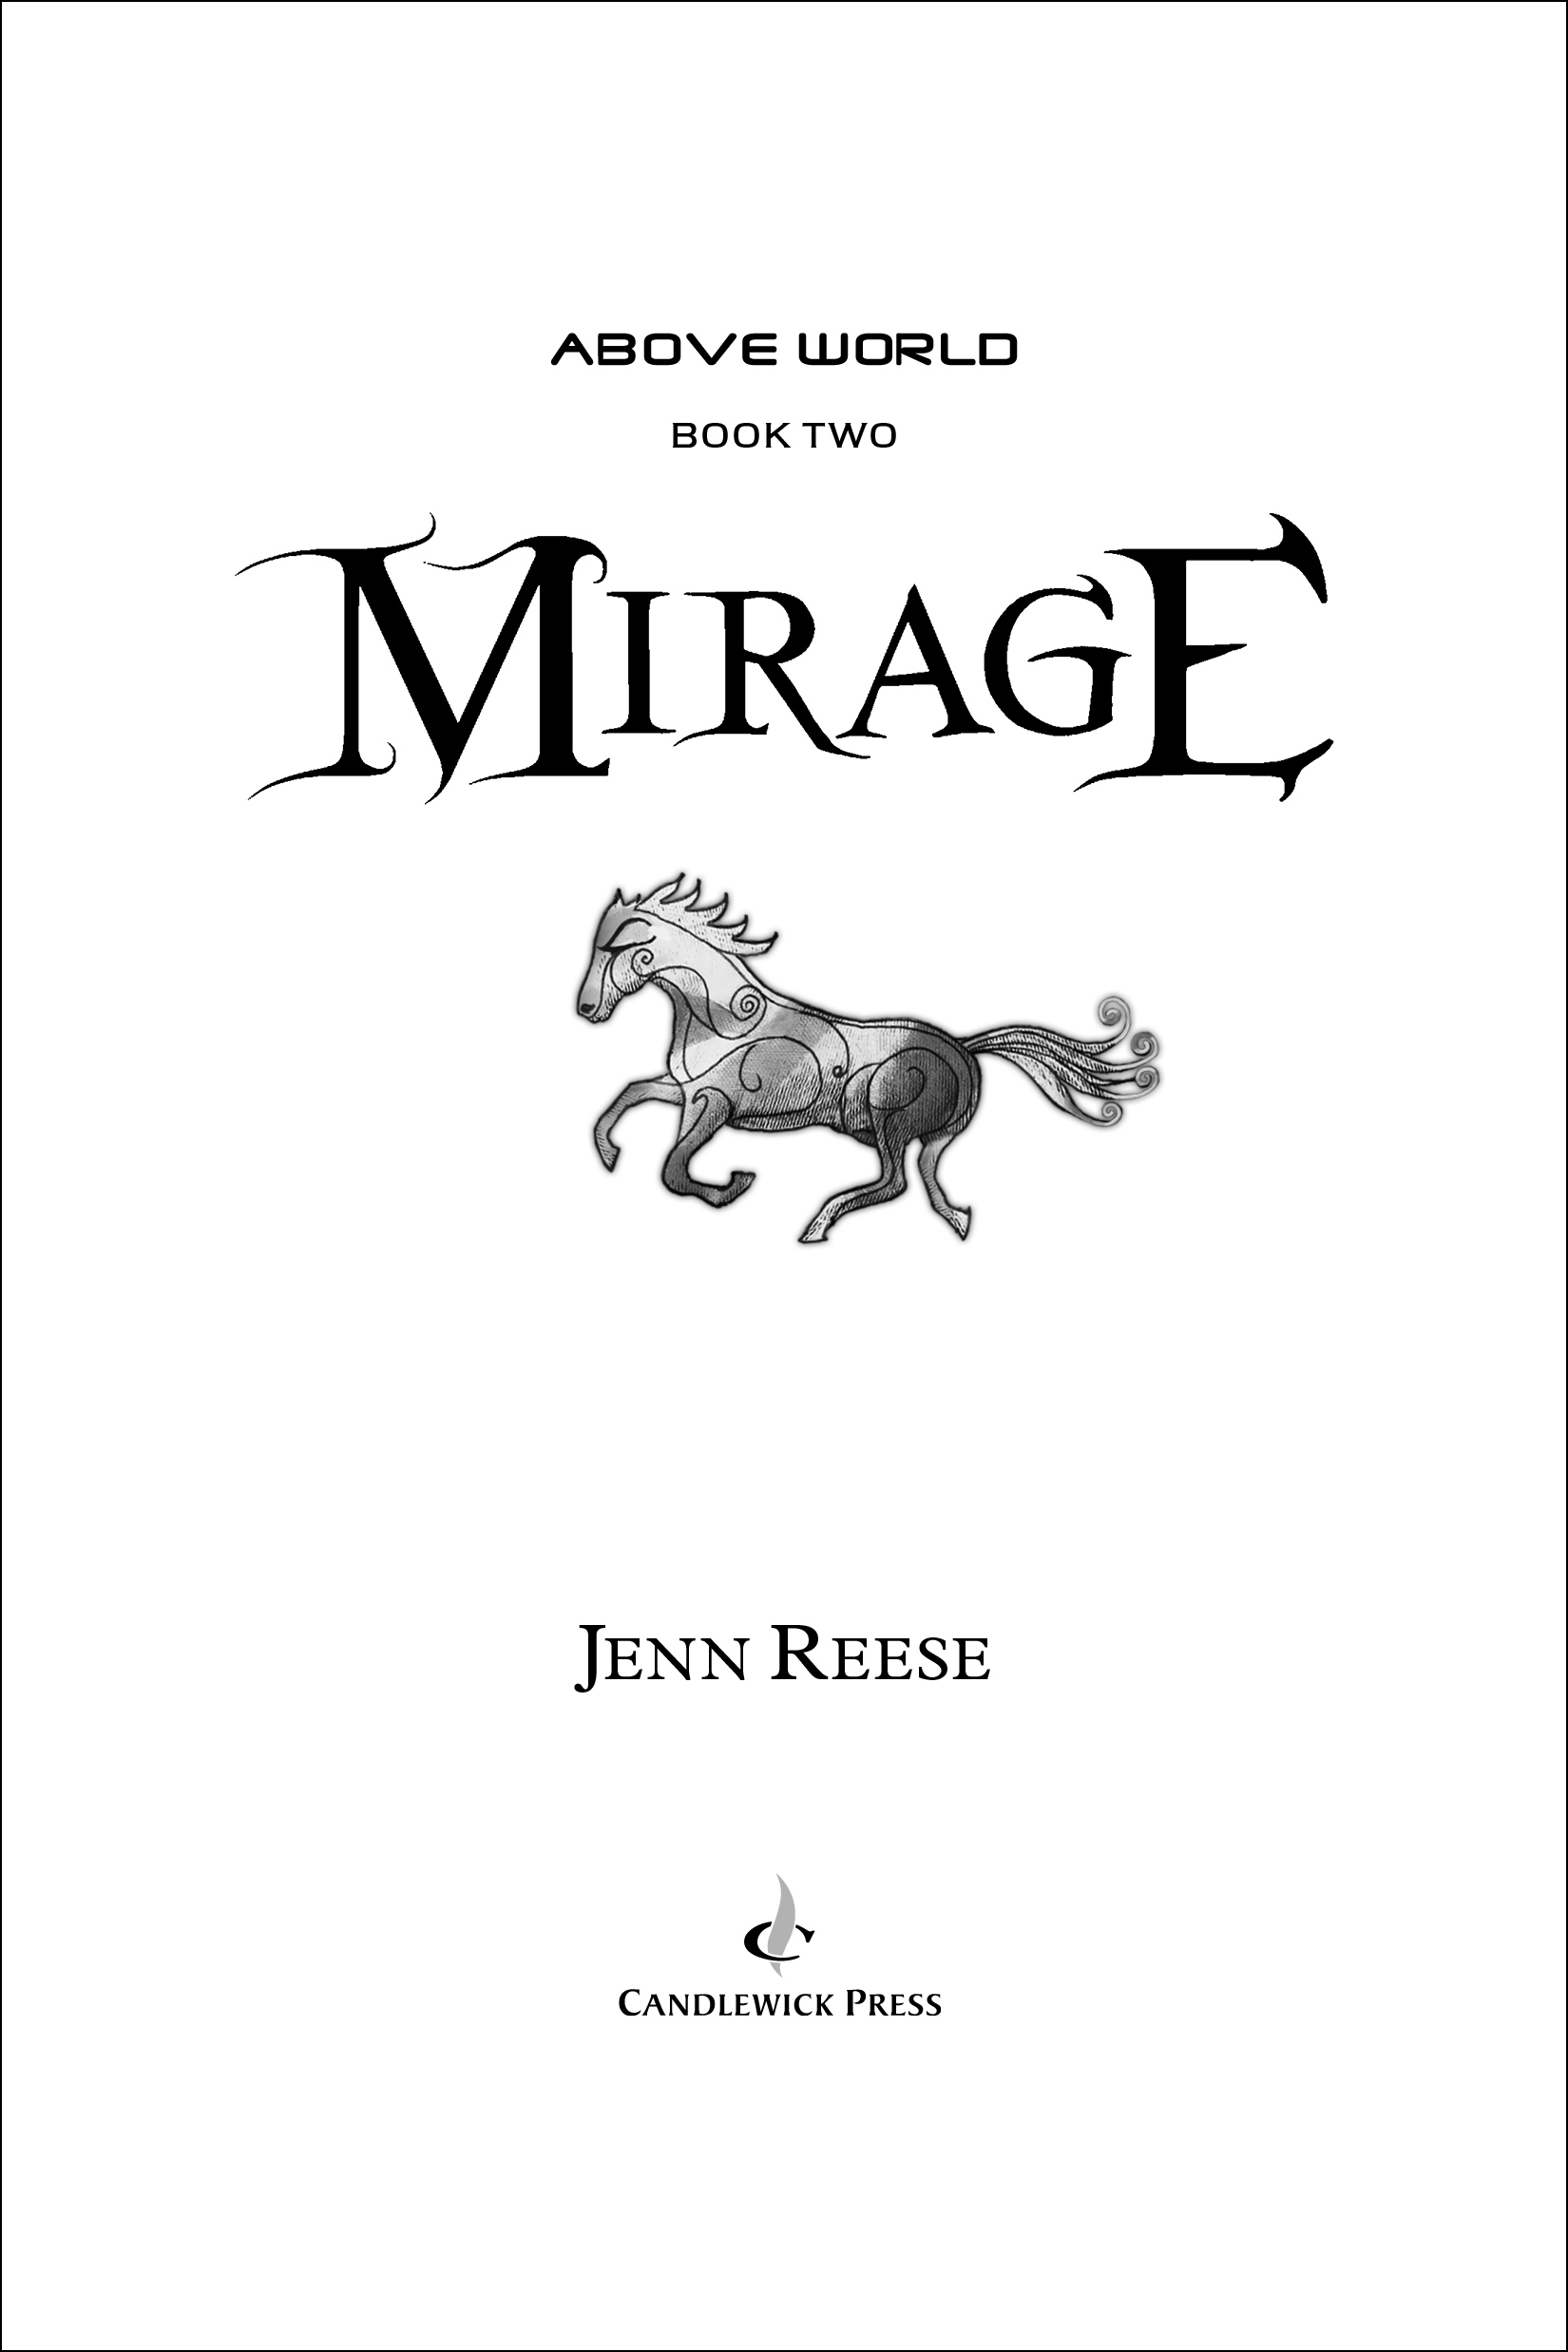 Title page for MIRAGE